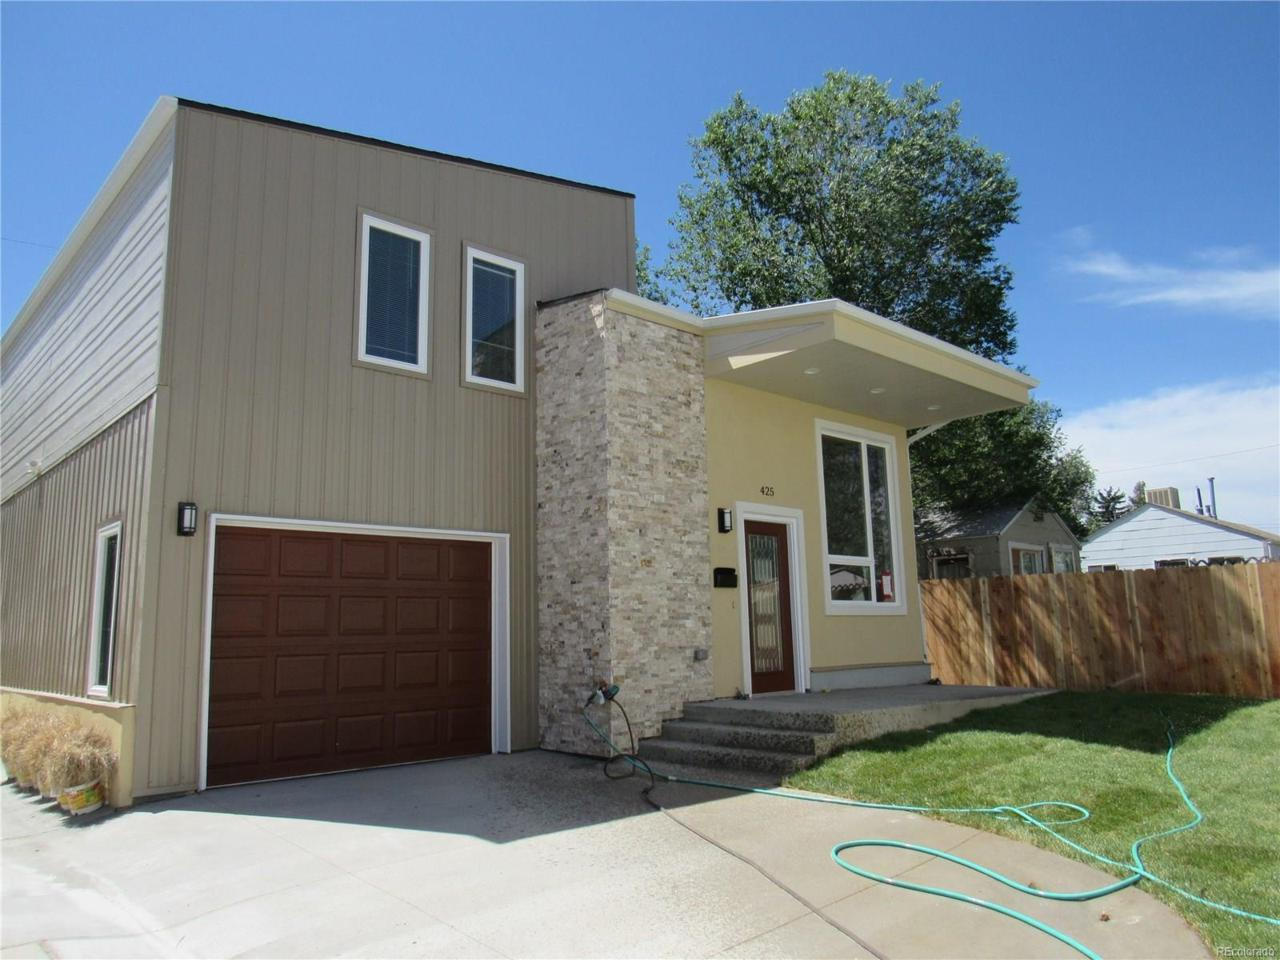 425 S Newton Street, Denver, CO 80219 (MLS #6438520) :: 8z Real Estate